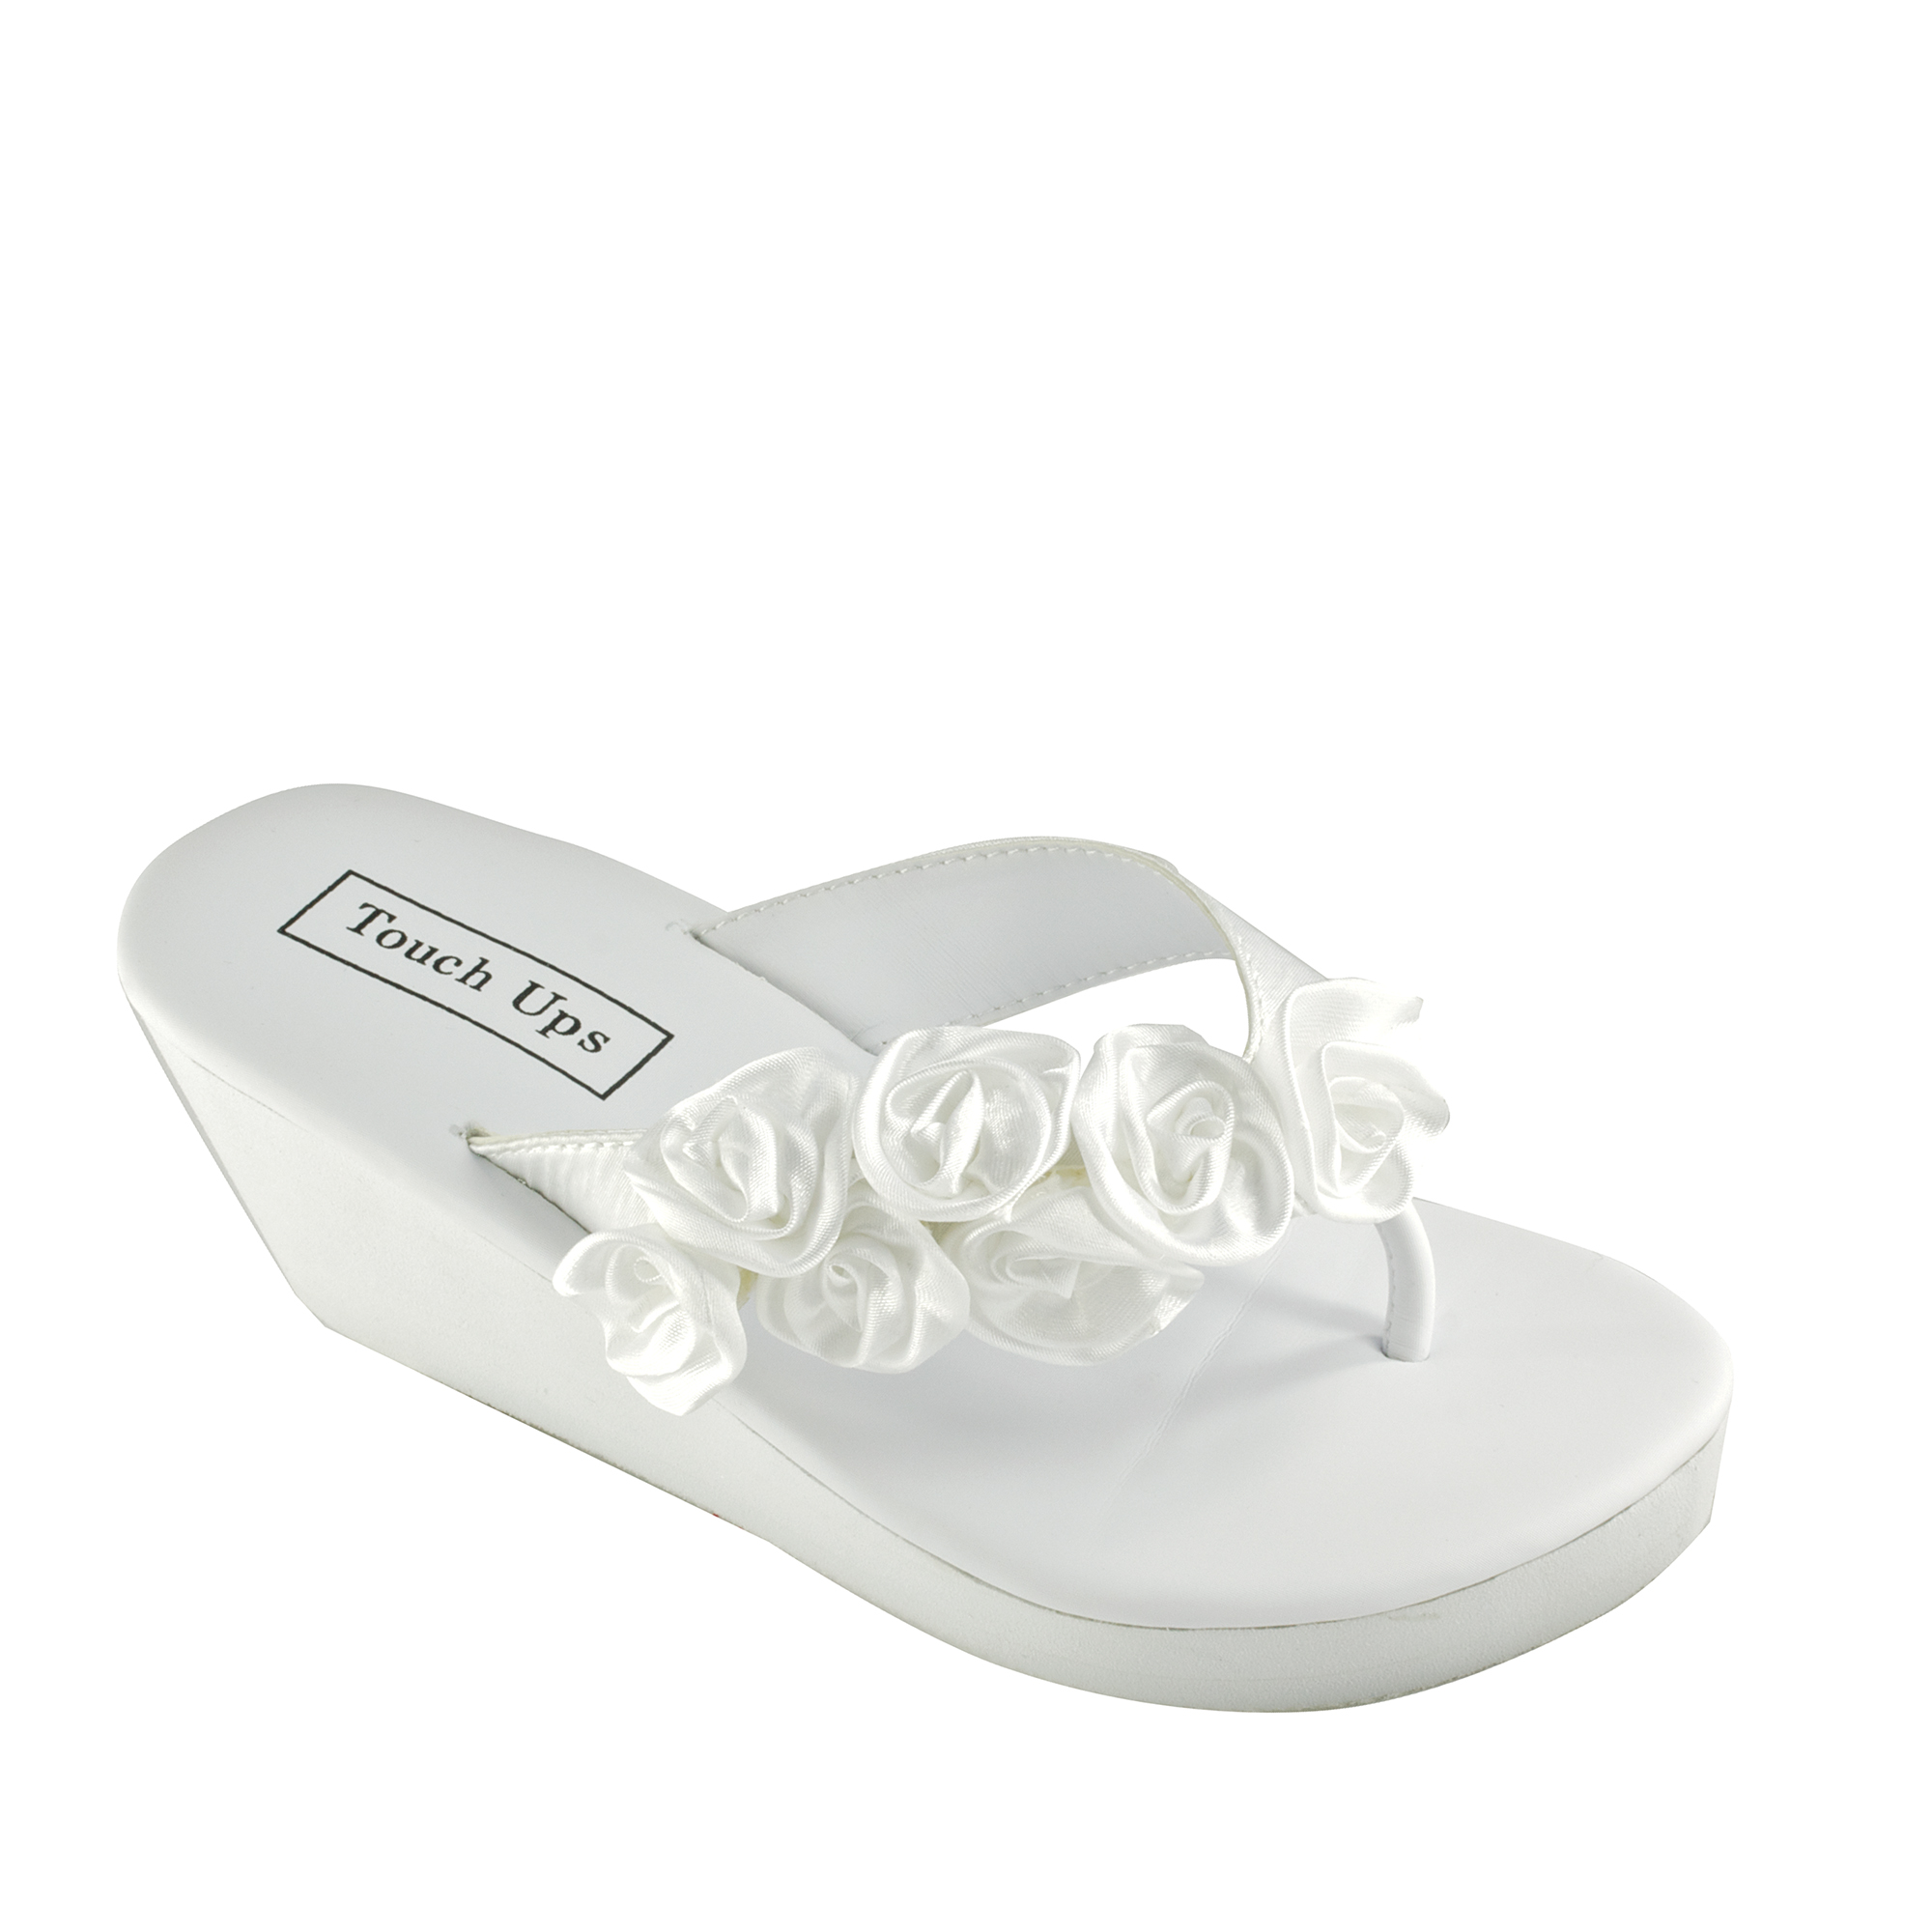 Bridal flip flops in White, Ivory, Silver, and Black for brides and bridesmaids.